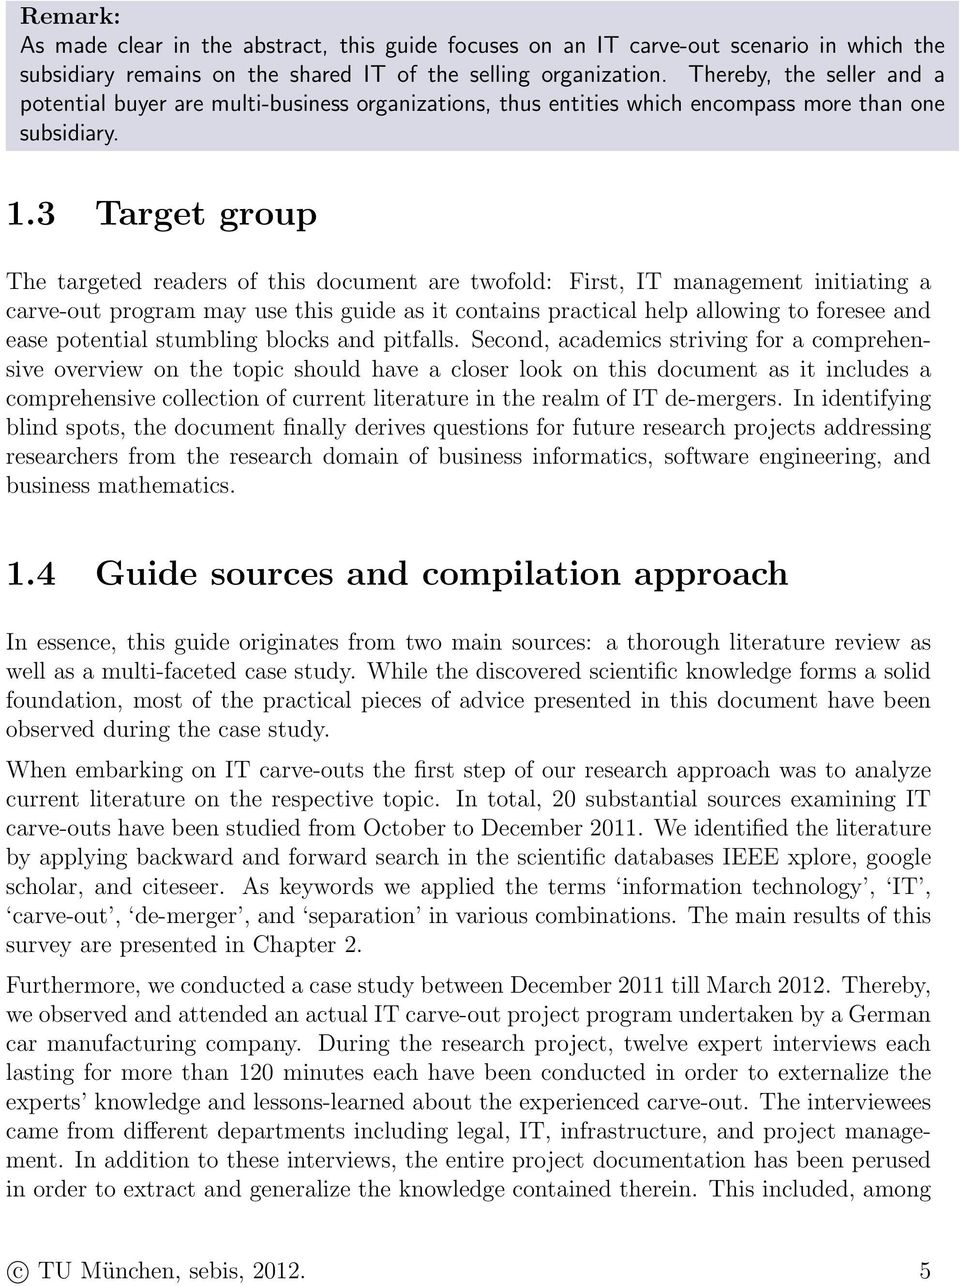 3 Target group The targeted readers of this document are twofold: First, IT management initiating a carve-out program may use this guide as it contains practical help allowing to foresee and ease